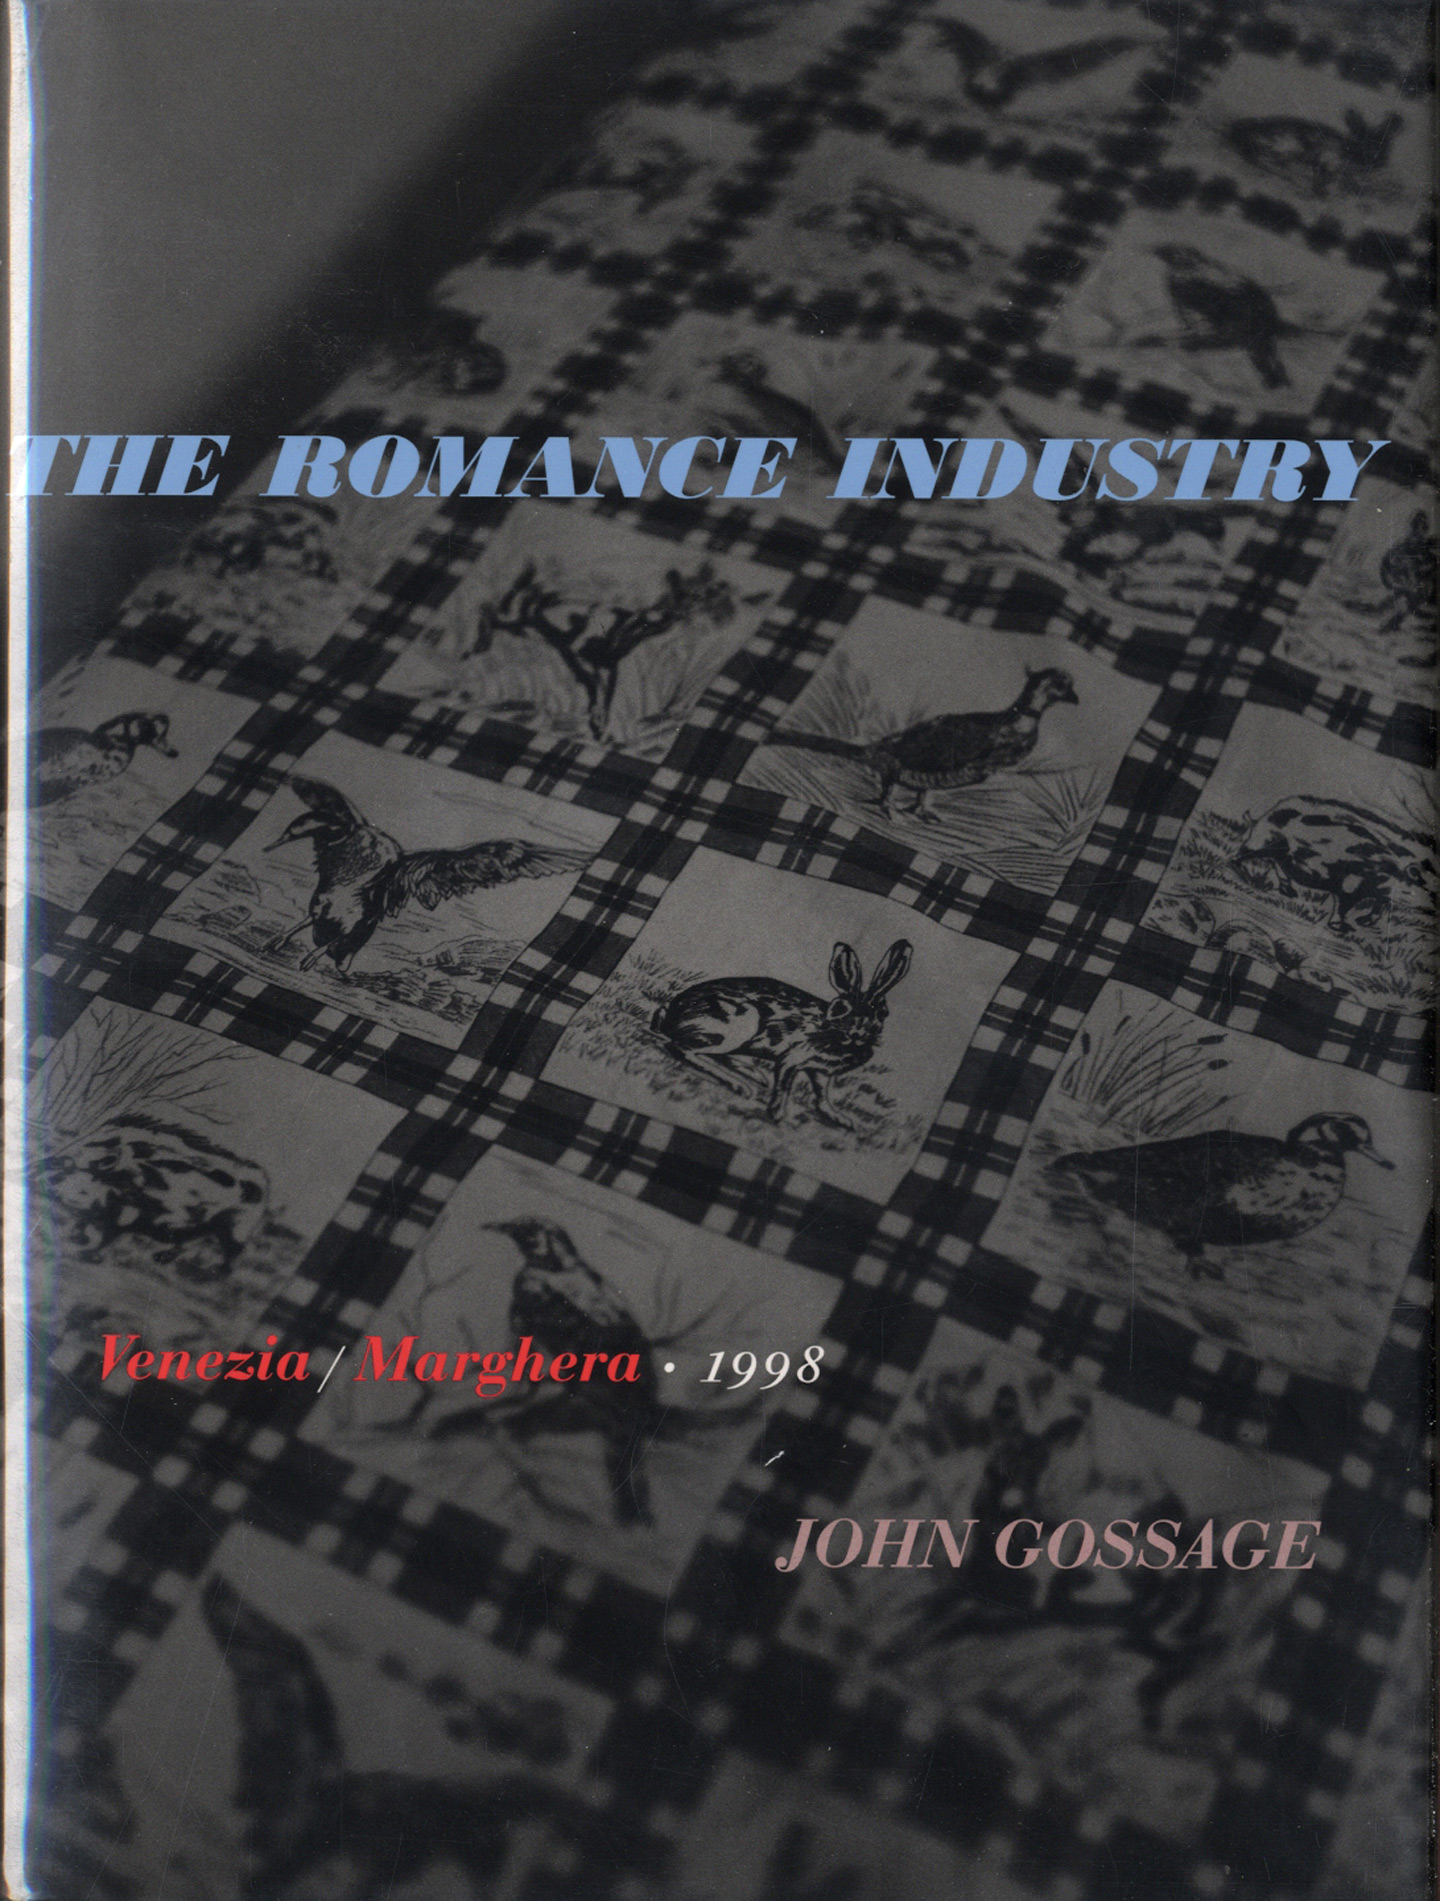 John Gossage: The Romance Industry: Venezia/Marghera 1998 [SIGNED ASSOCIATION COPY]